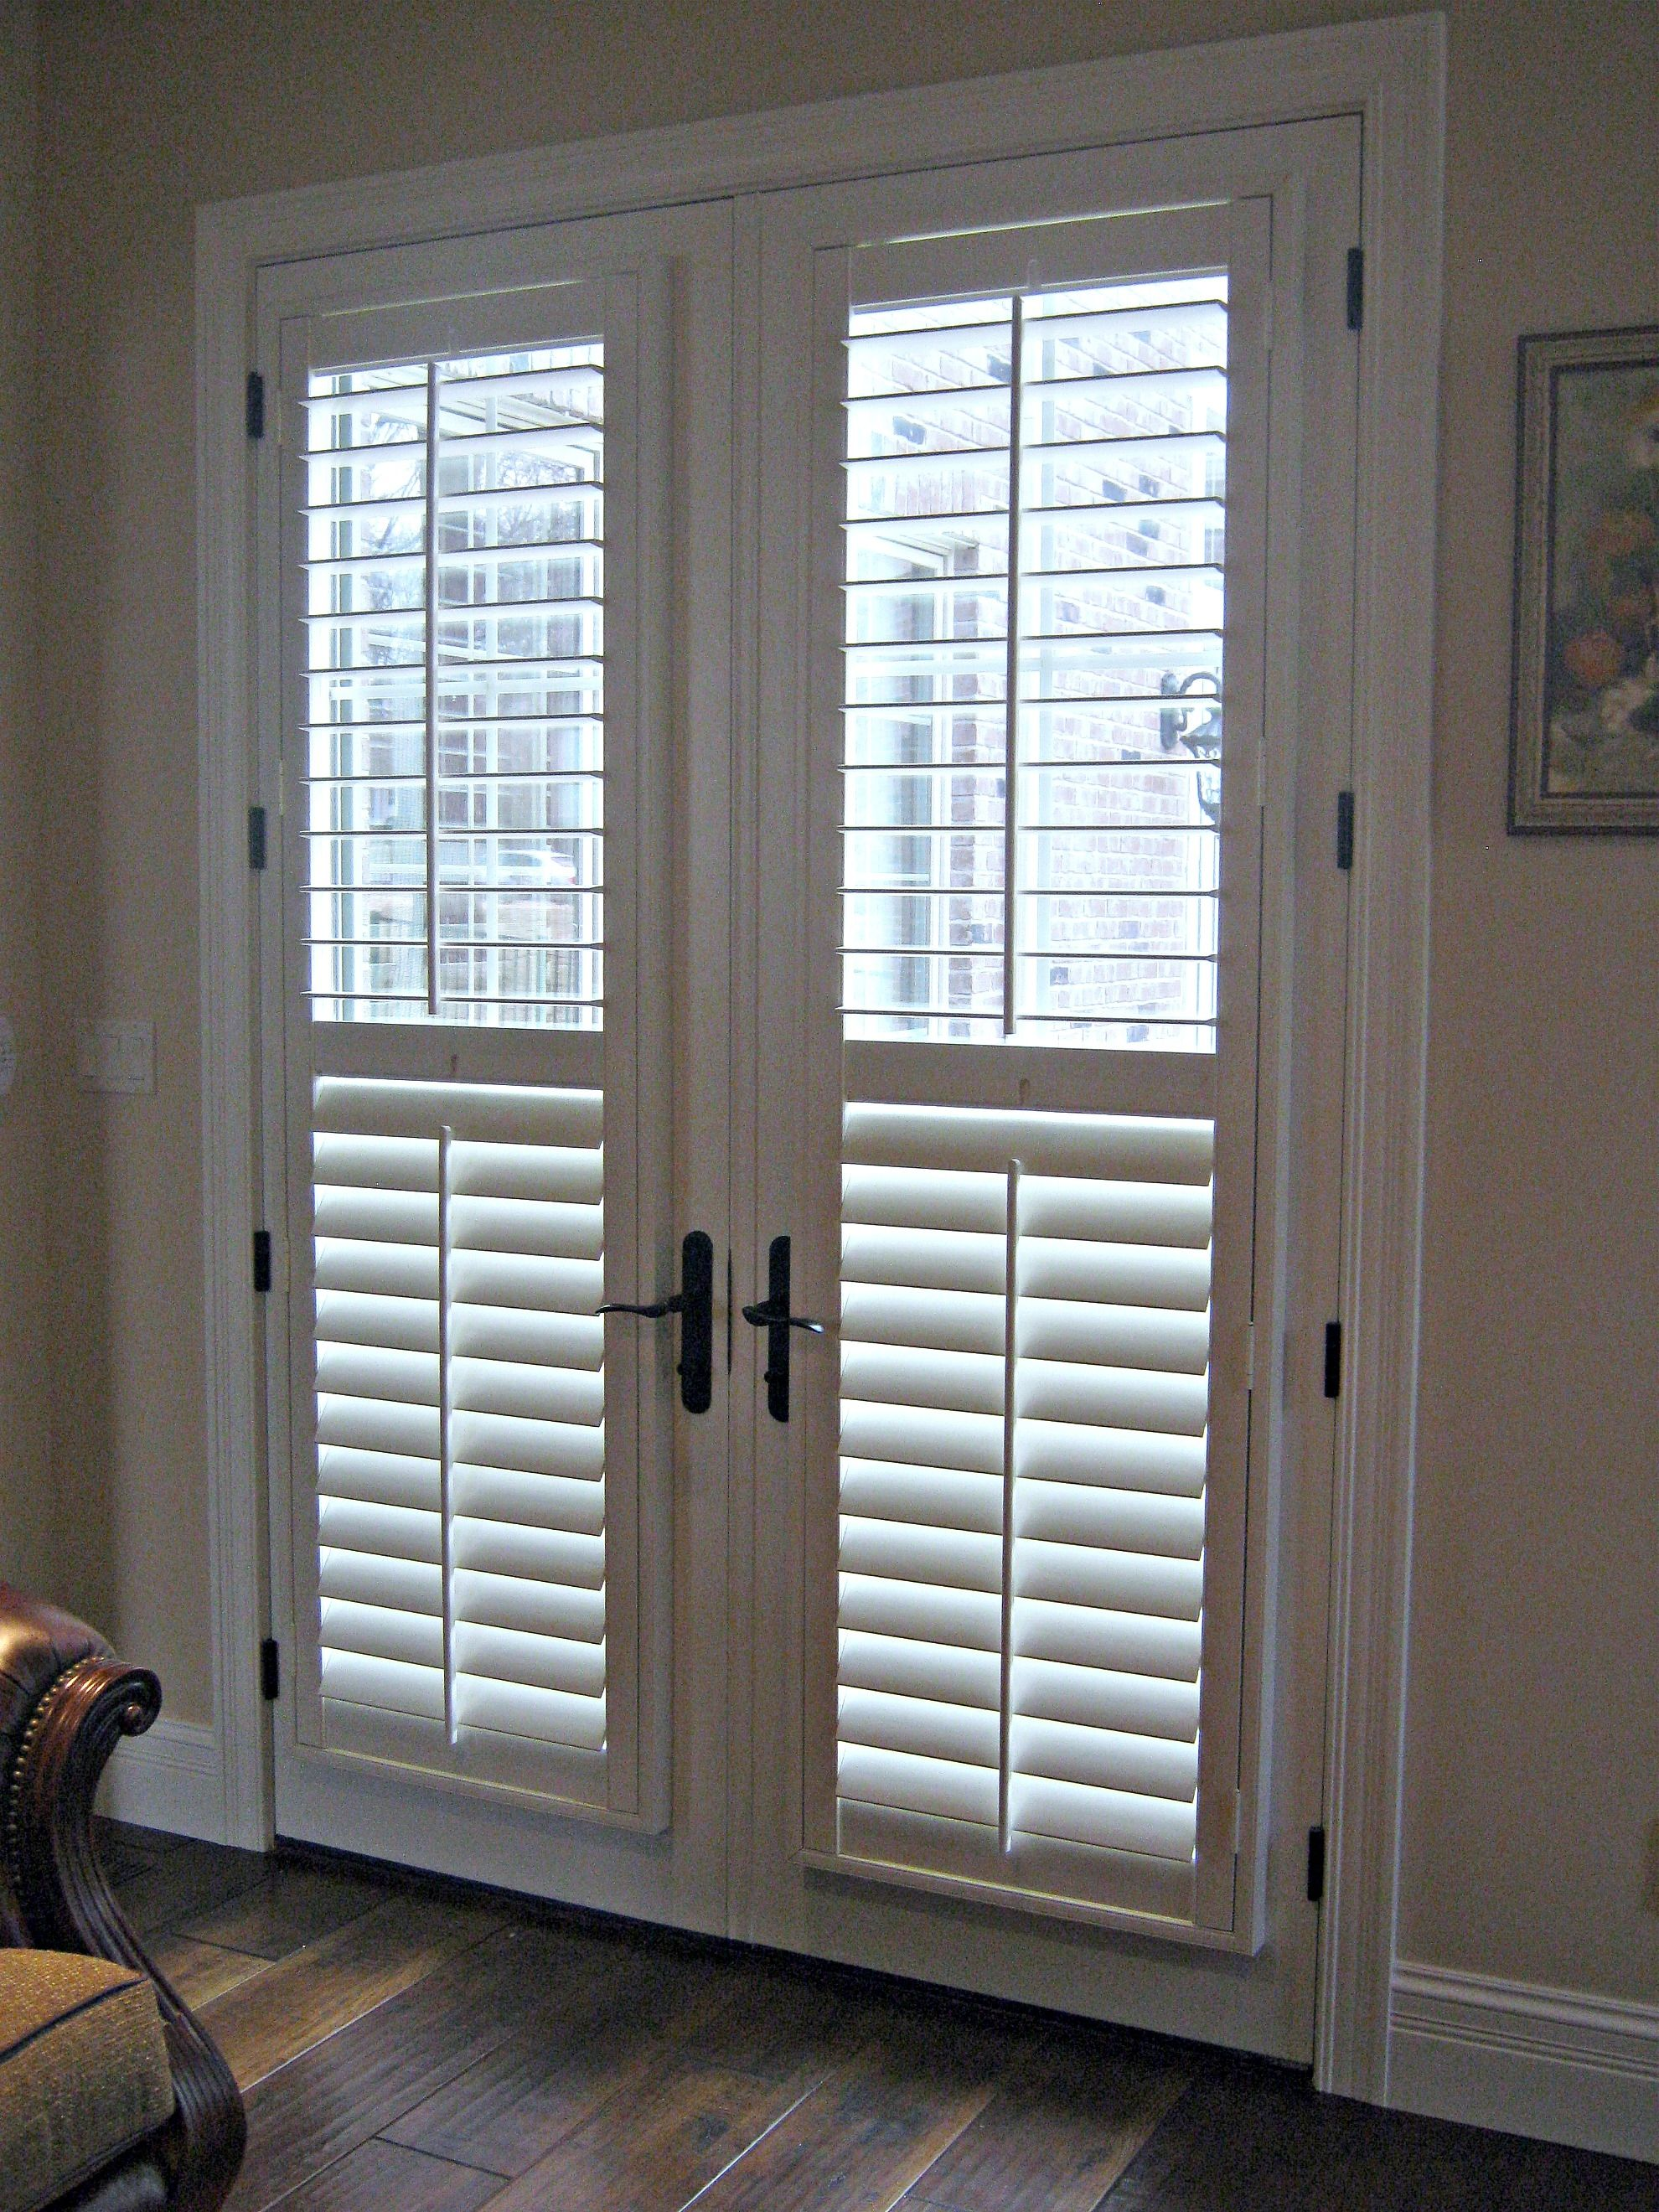 patio are door barcelona allowsl charcoali great and the panel fabricsi larger for linen tracks track office doors hero blindsl windows blinds paneltracks fabric